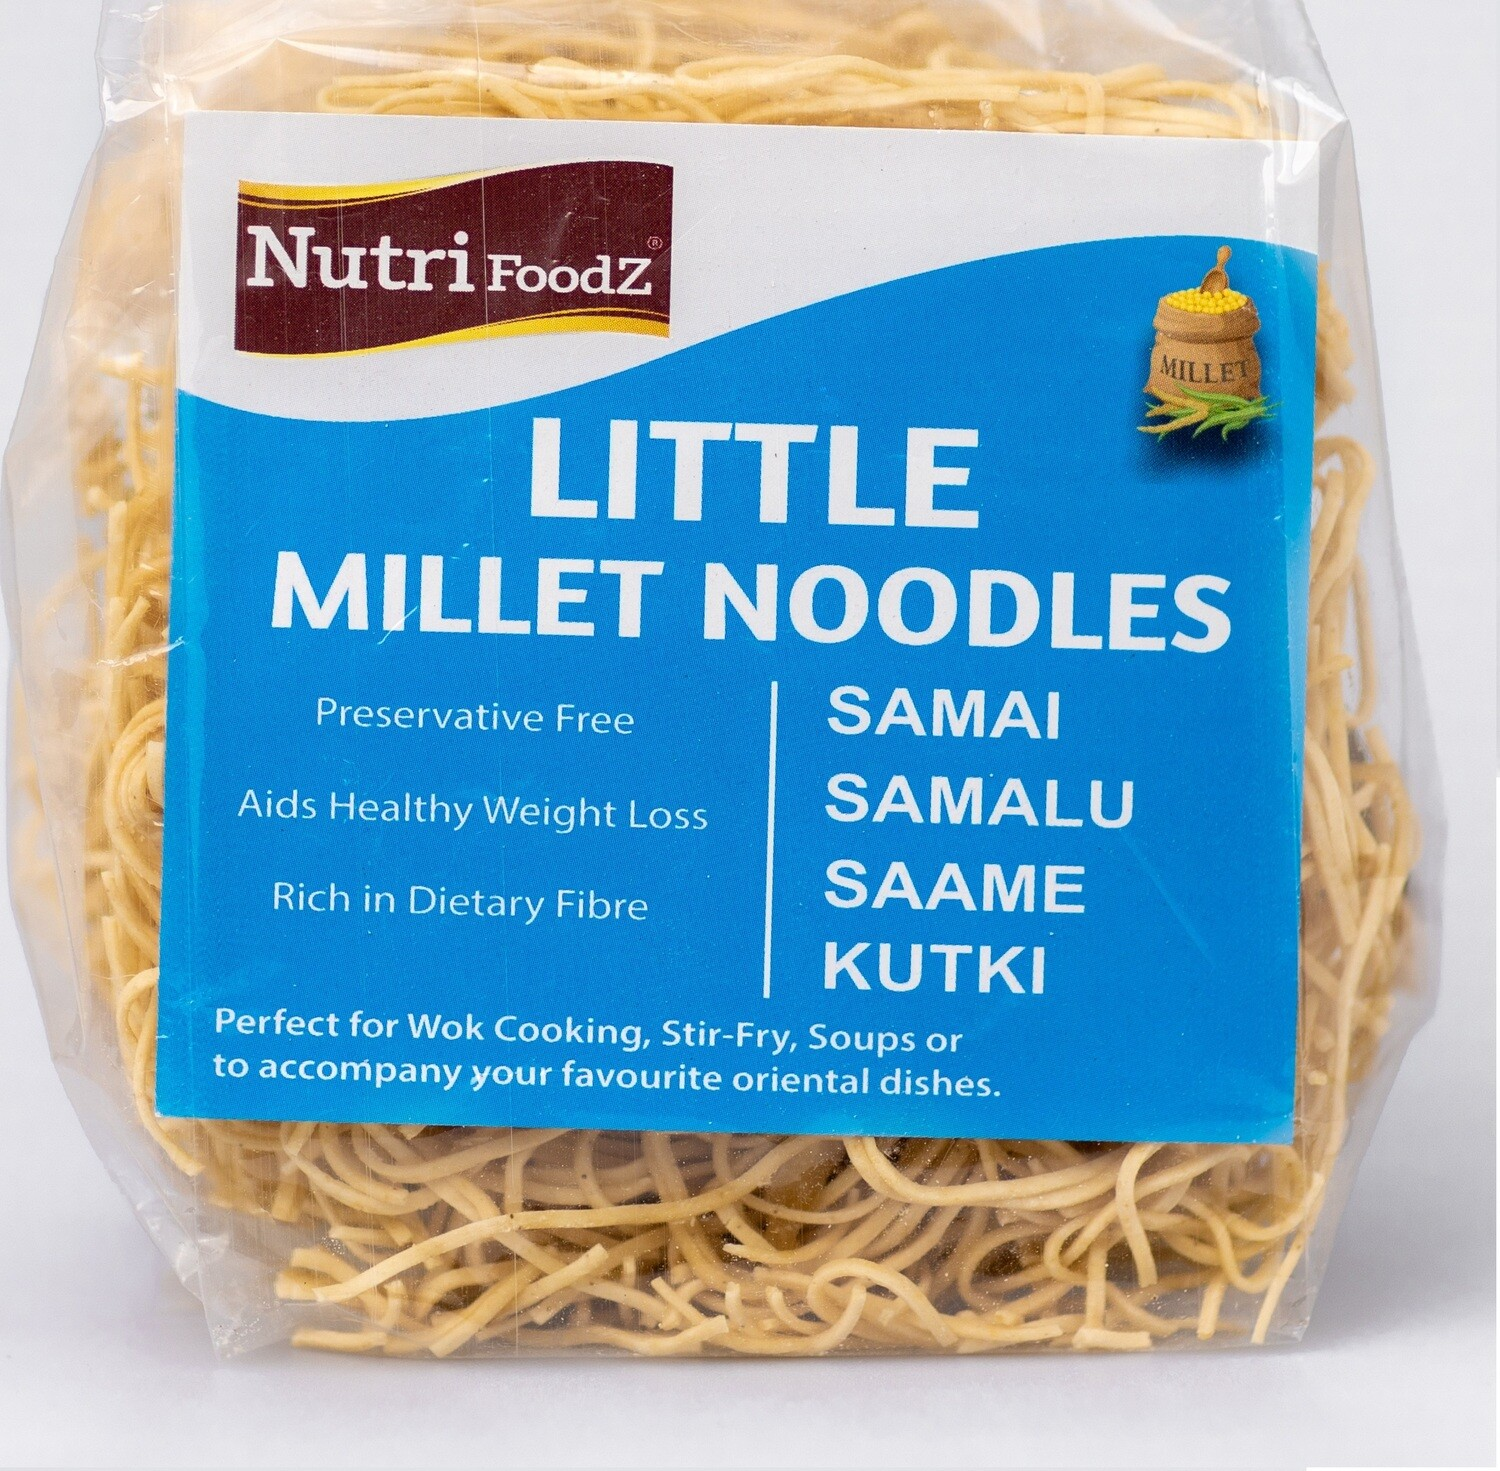 NUTRI FOODZ LITTLE MILLET NOODLES (Includes Taste Maker packet)